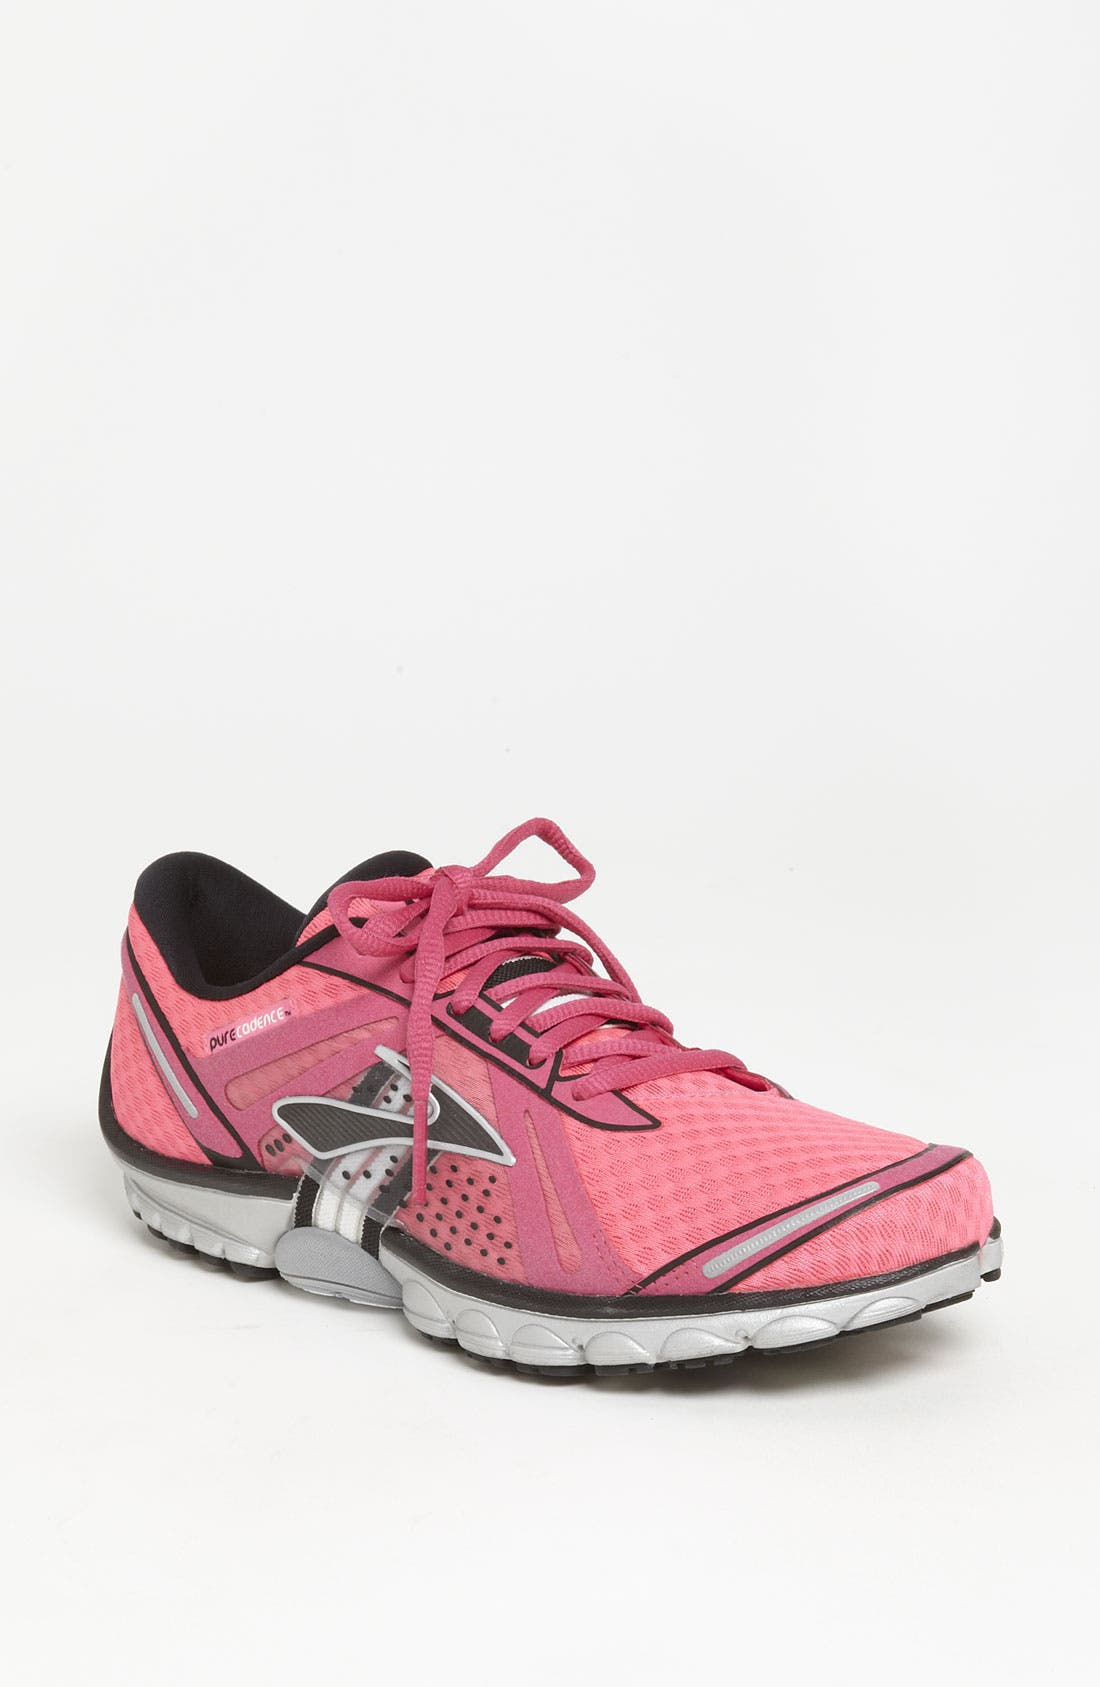 Main Image - Brooks 'PureCadence' Running Shoe (Women) (Regular Retail Price: $119.95)